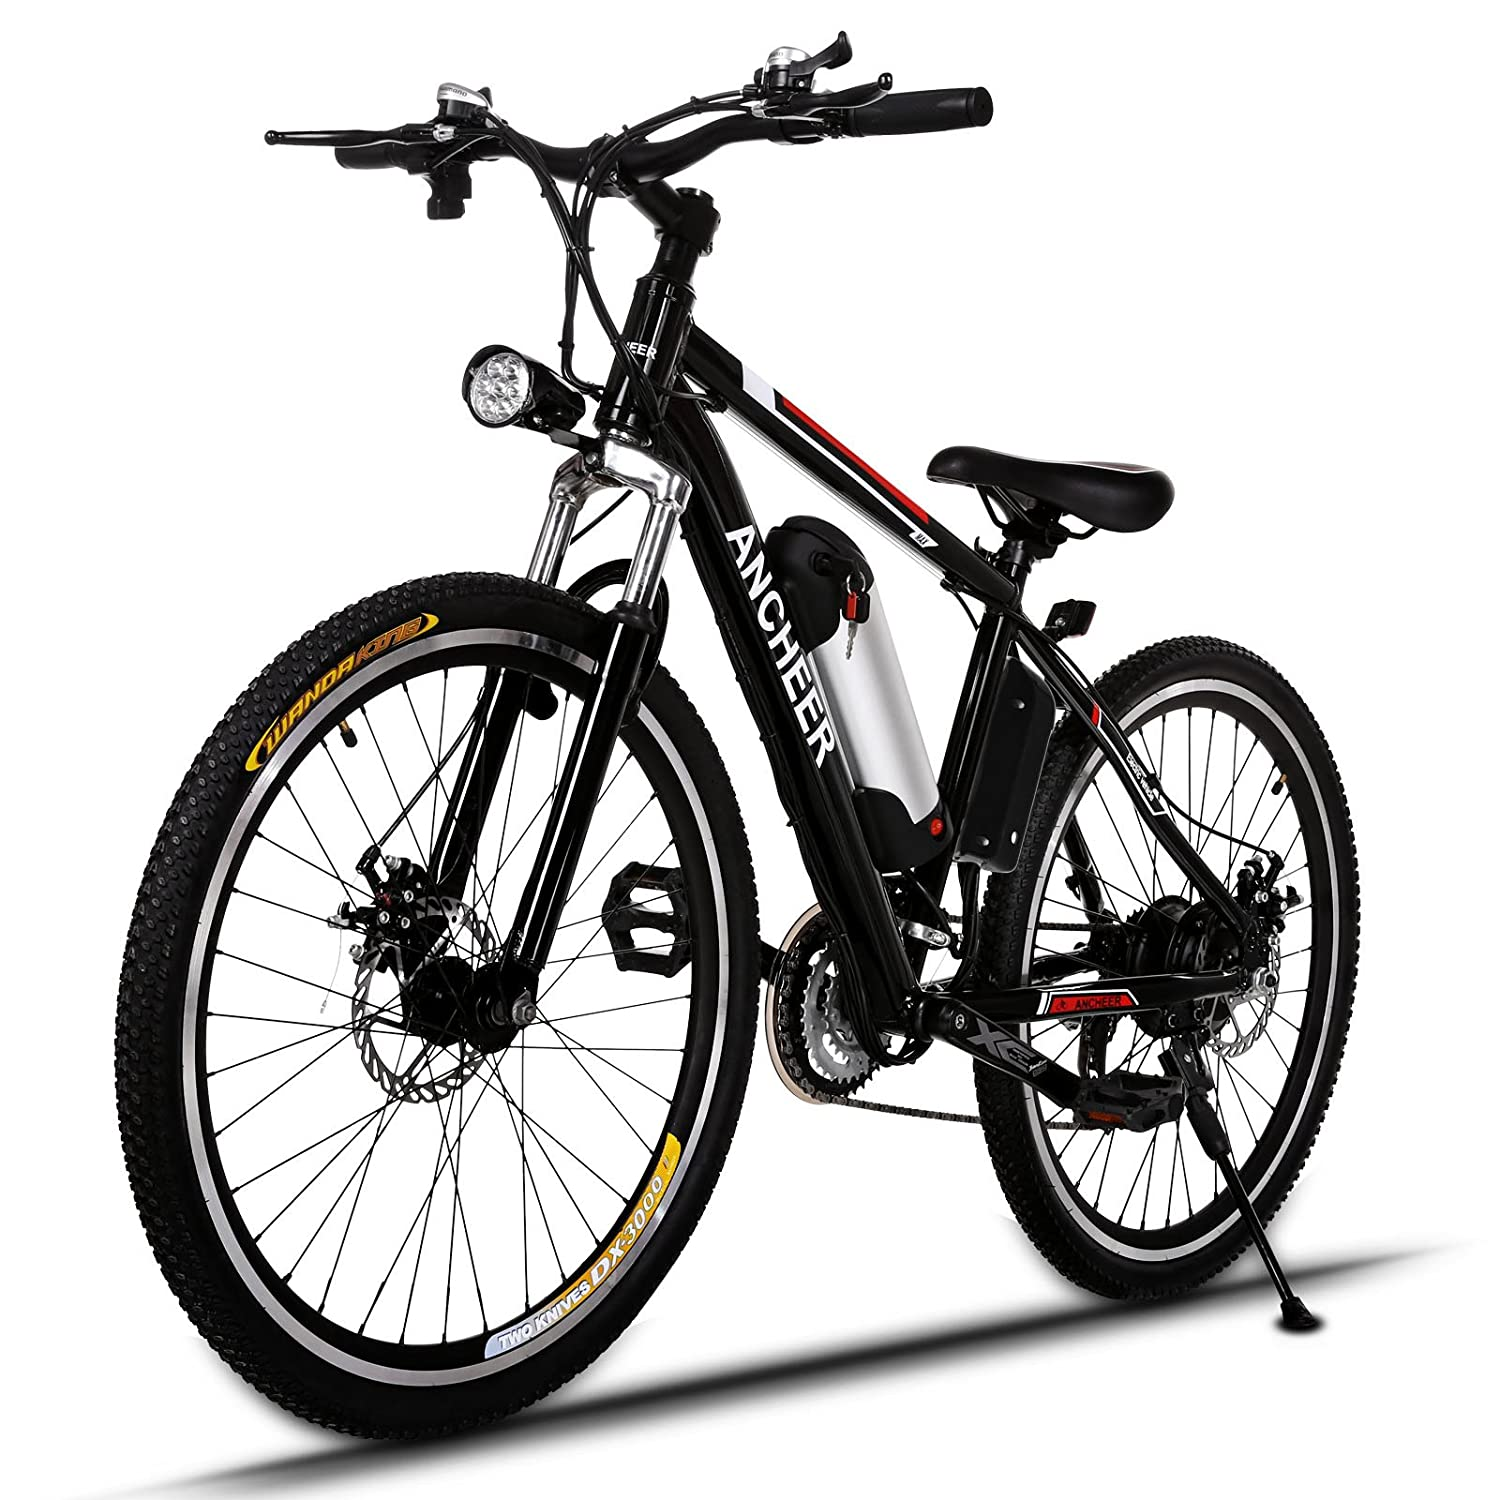 image of black electric bike prebuilt